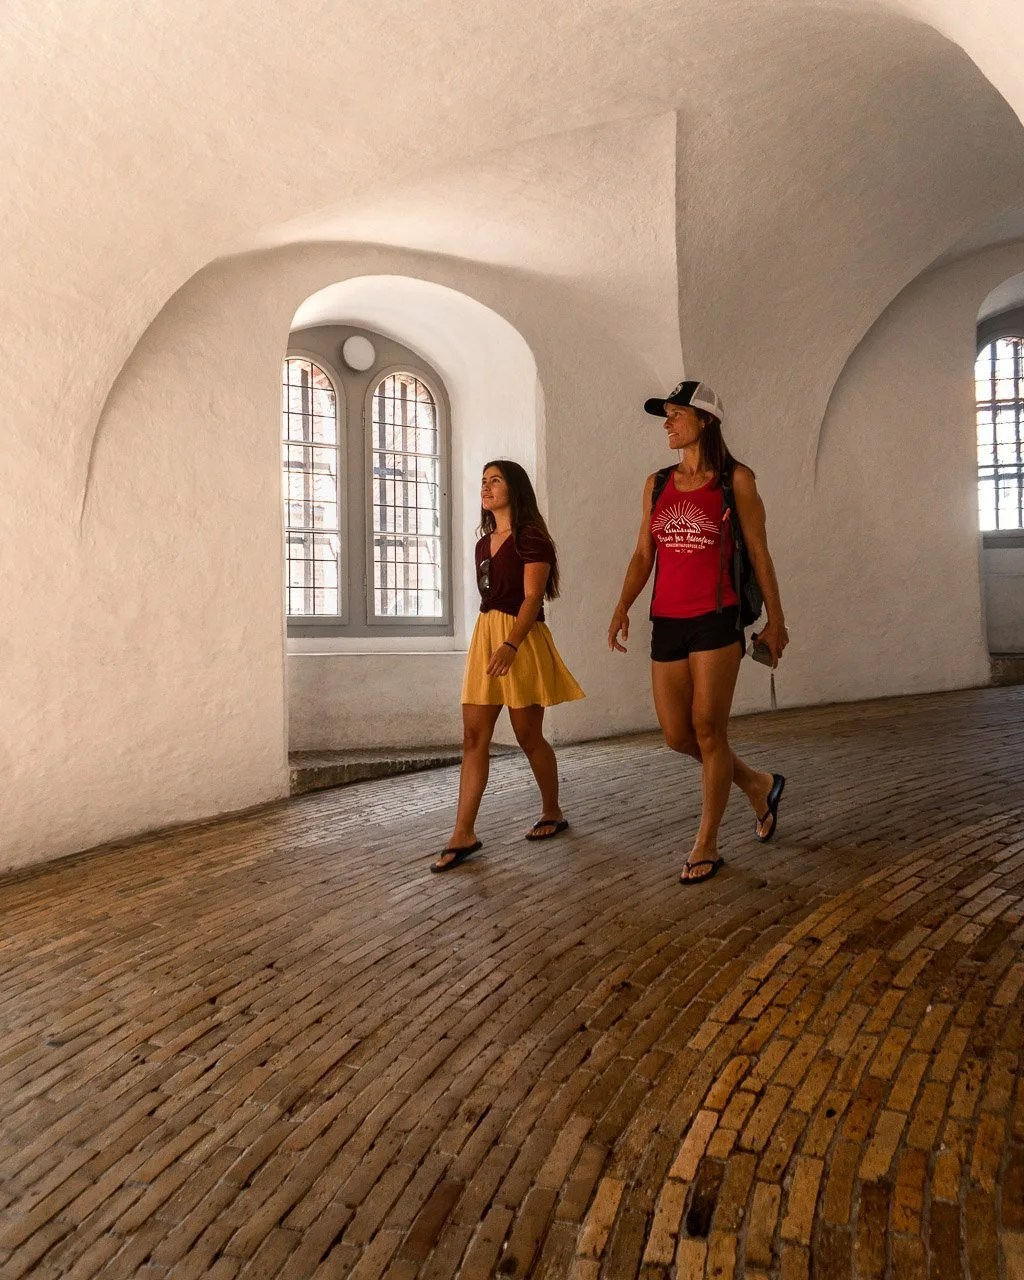 Round Tower Copenhagen, a 1 day itinerary